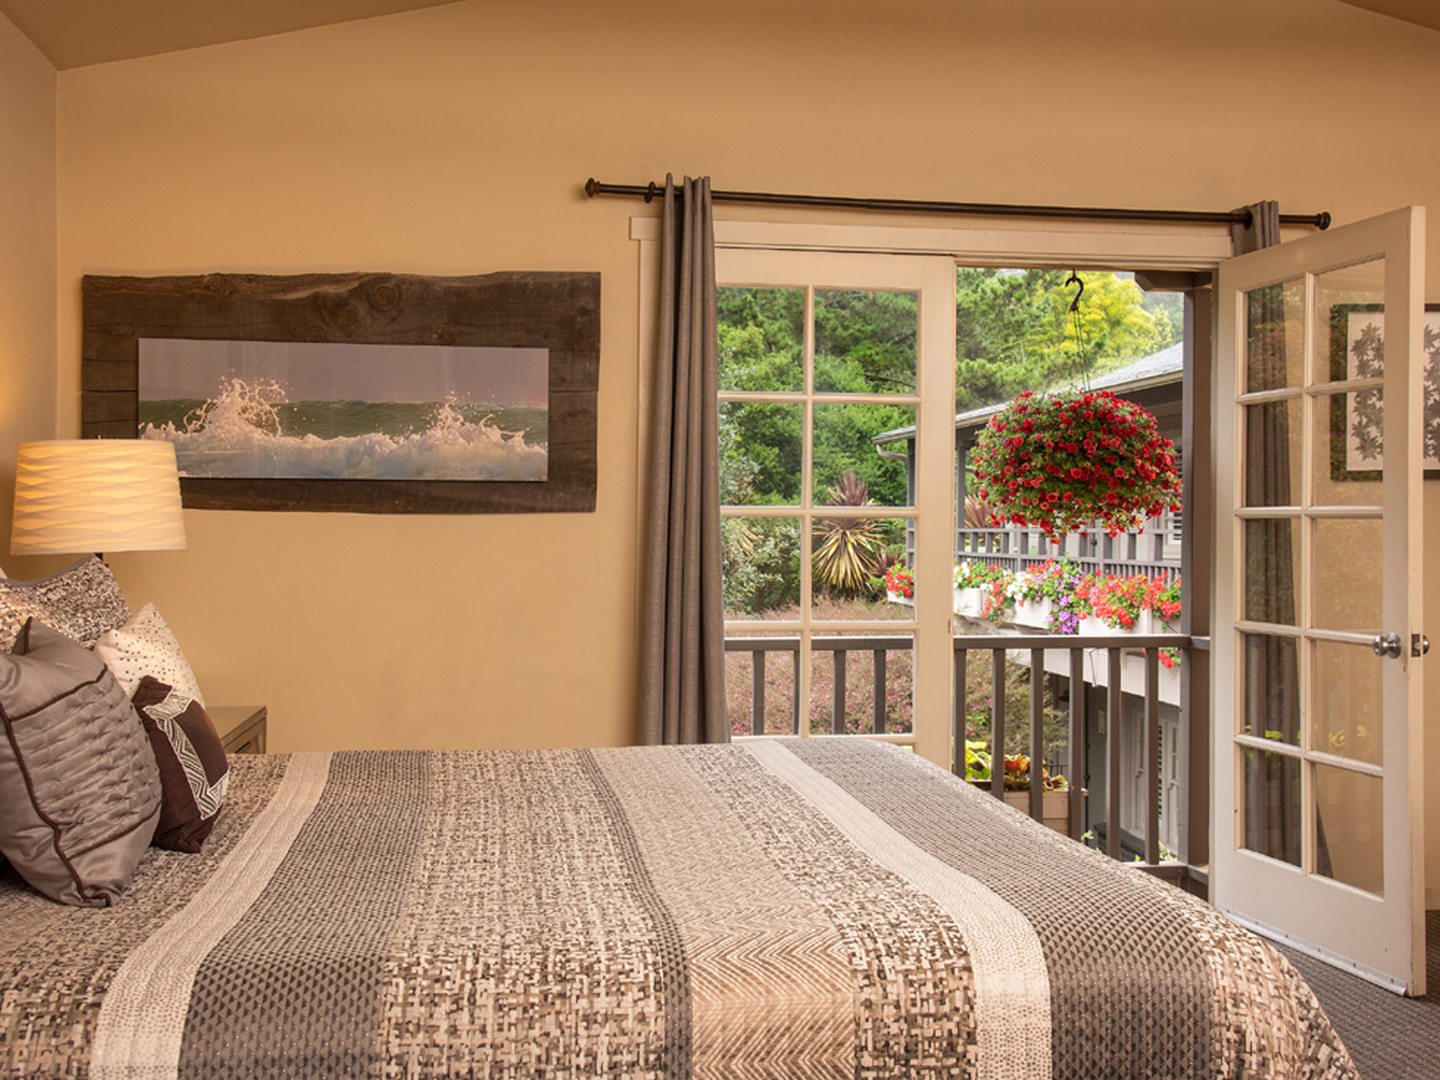 A bedroom with a large bed in a room at Carmel Country Inn.